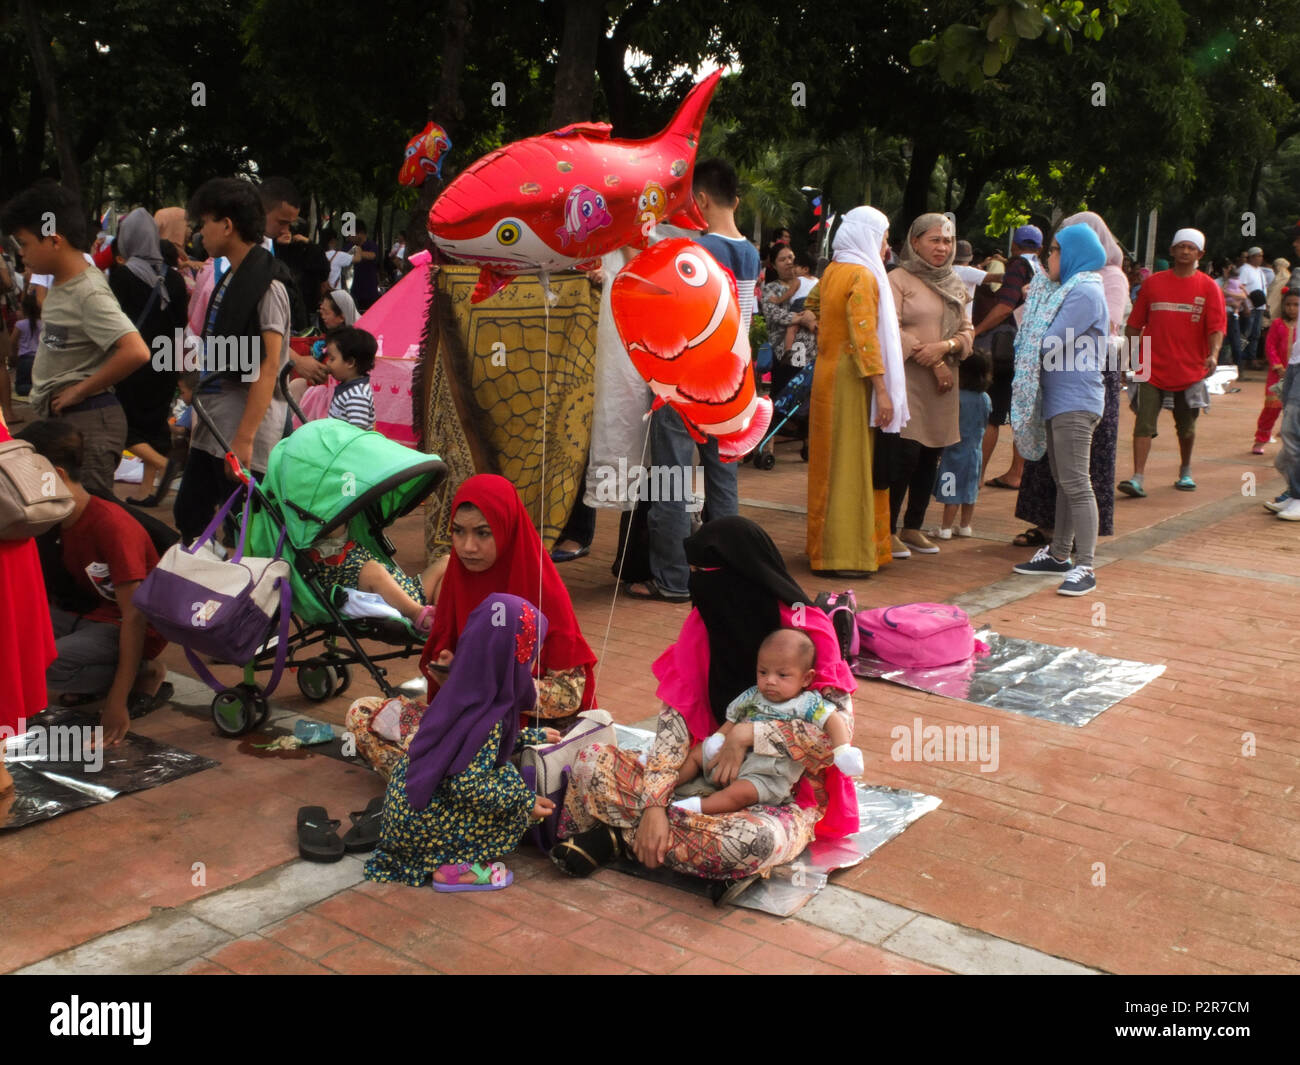 Manila, Philippines. 2nd Feb, 2018. Muslim families gather around the Quirino Grandstand grounds.Filipino and foreign Muslims gather at Quirino Grandstand in Manila to celebrate the end of Ramadan. They celebrate it with prayers, food and fun, especially for the family. Eid al-Fitr is an important religious holiday celebrated by Muslims worldwide that marks the end of Ramadan, the Islamic holy month of fasting. Credit: Josefiel Rivera/SOPA Images/ZUMA Wire/Alamy Live News - Stock Image